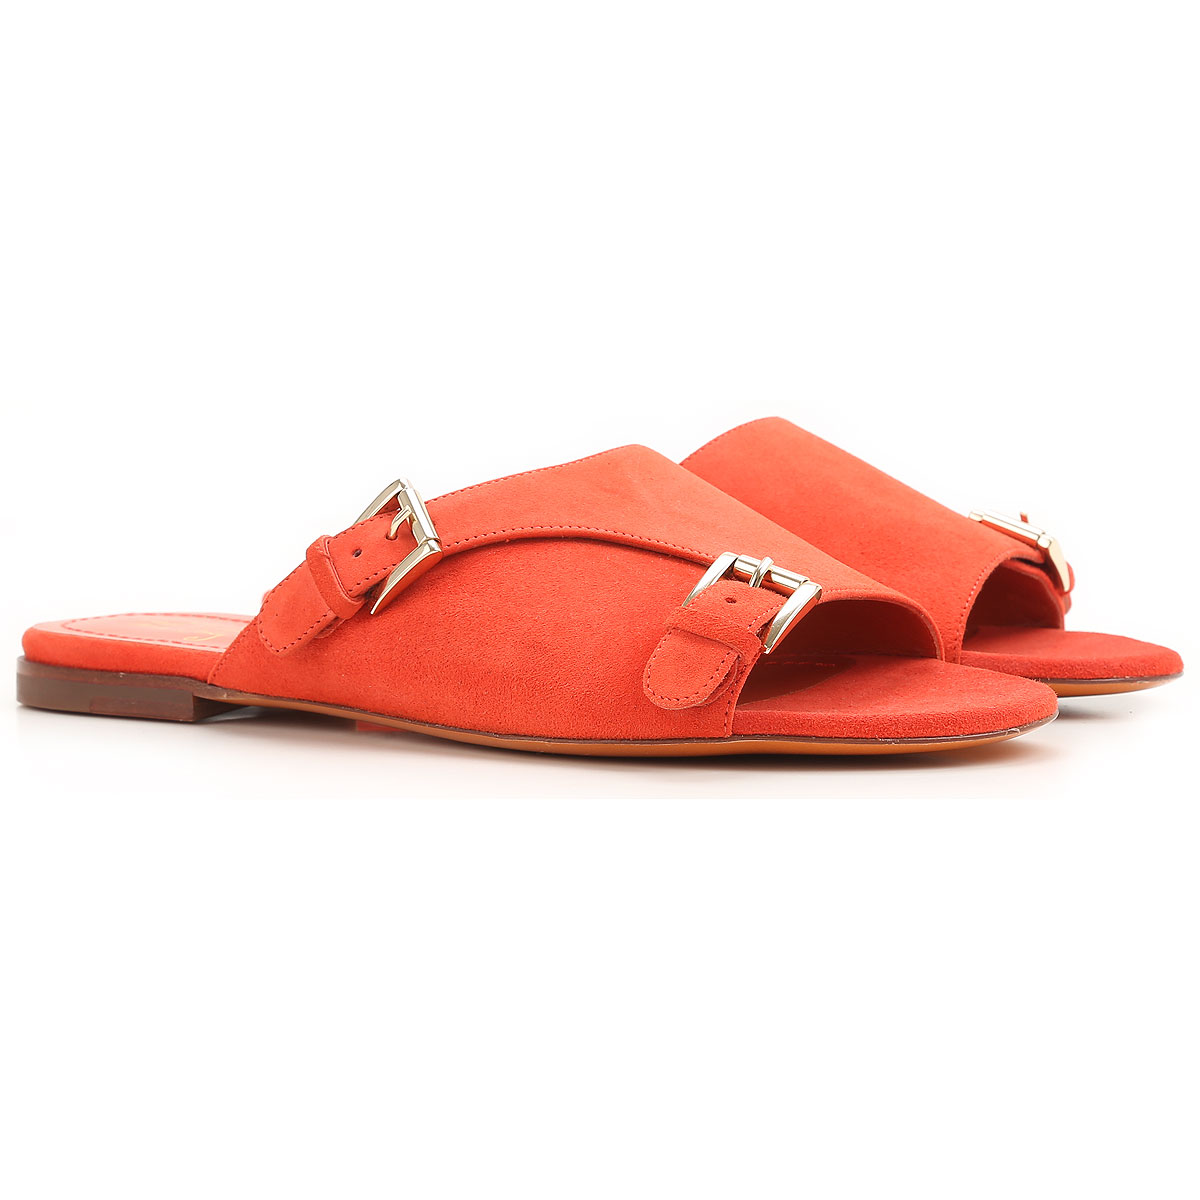 Santoni Sandals for Women On Sale in Outlet, Rose Collection, Coral, Suede leather, 2019, 6.5 8.5